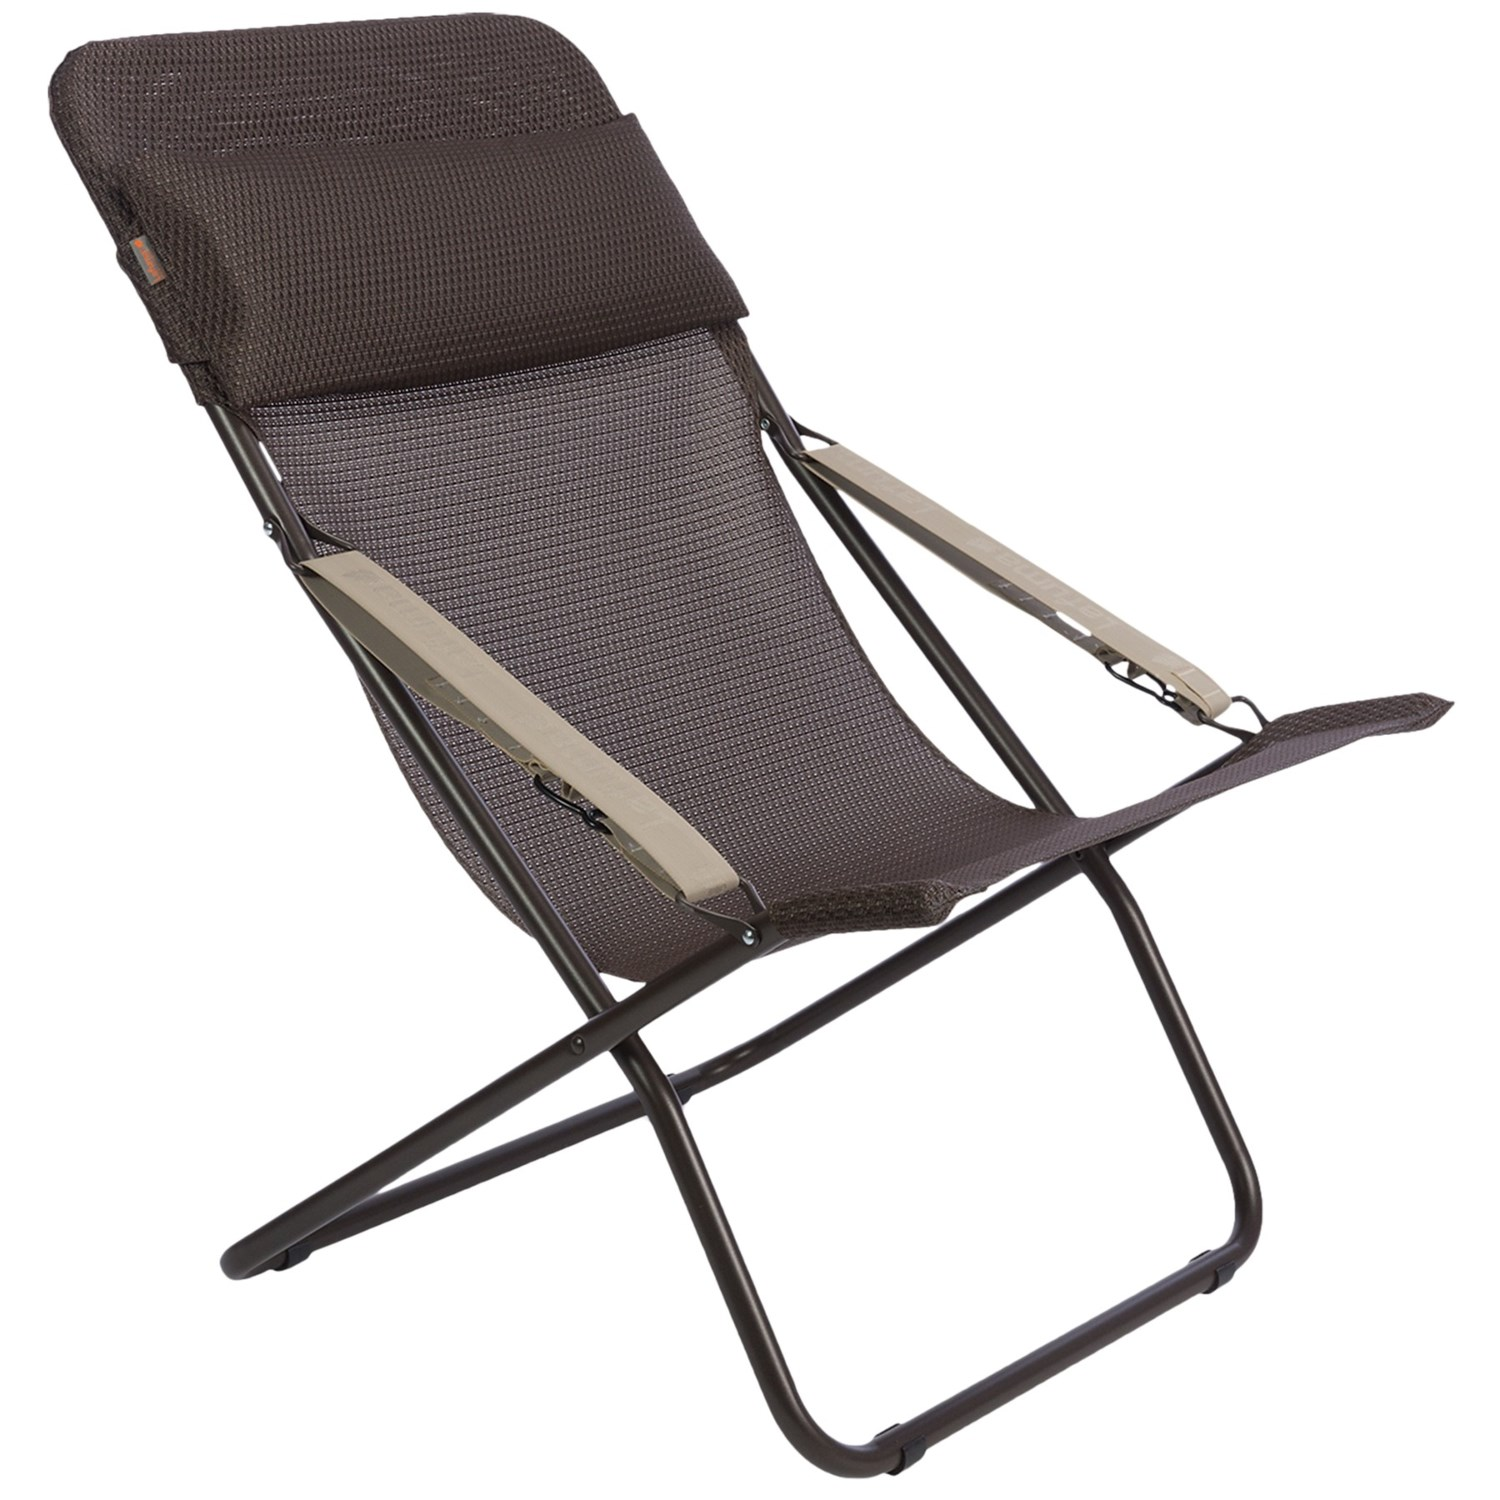 Folding Lounge Chair Lafuma Transabed Xl Folding Lounge Chair Batyline